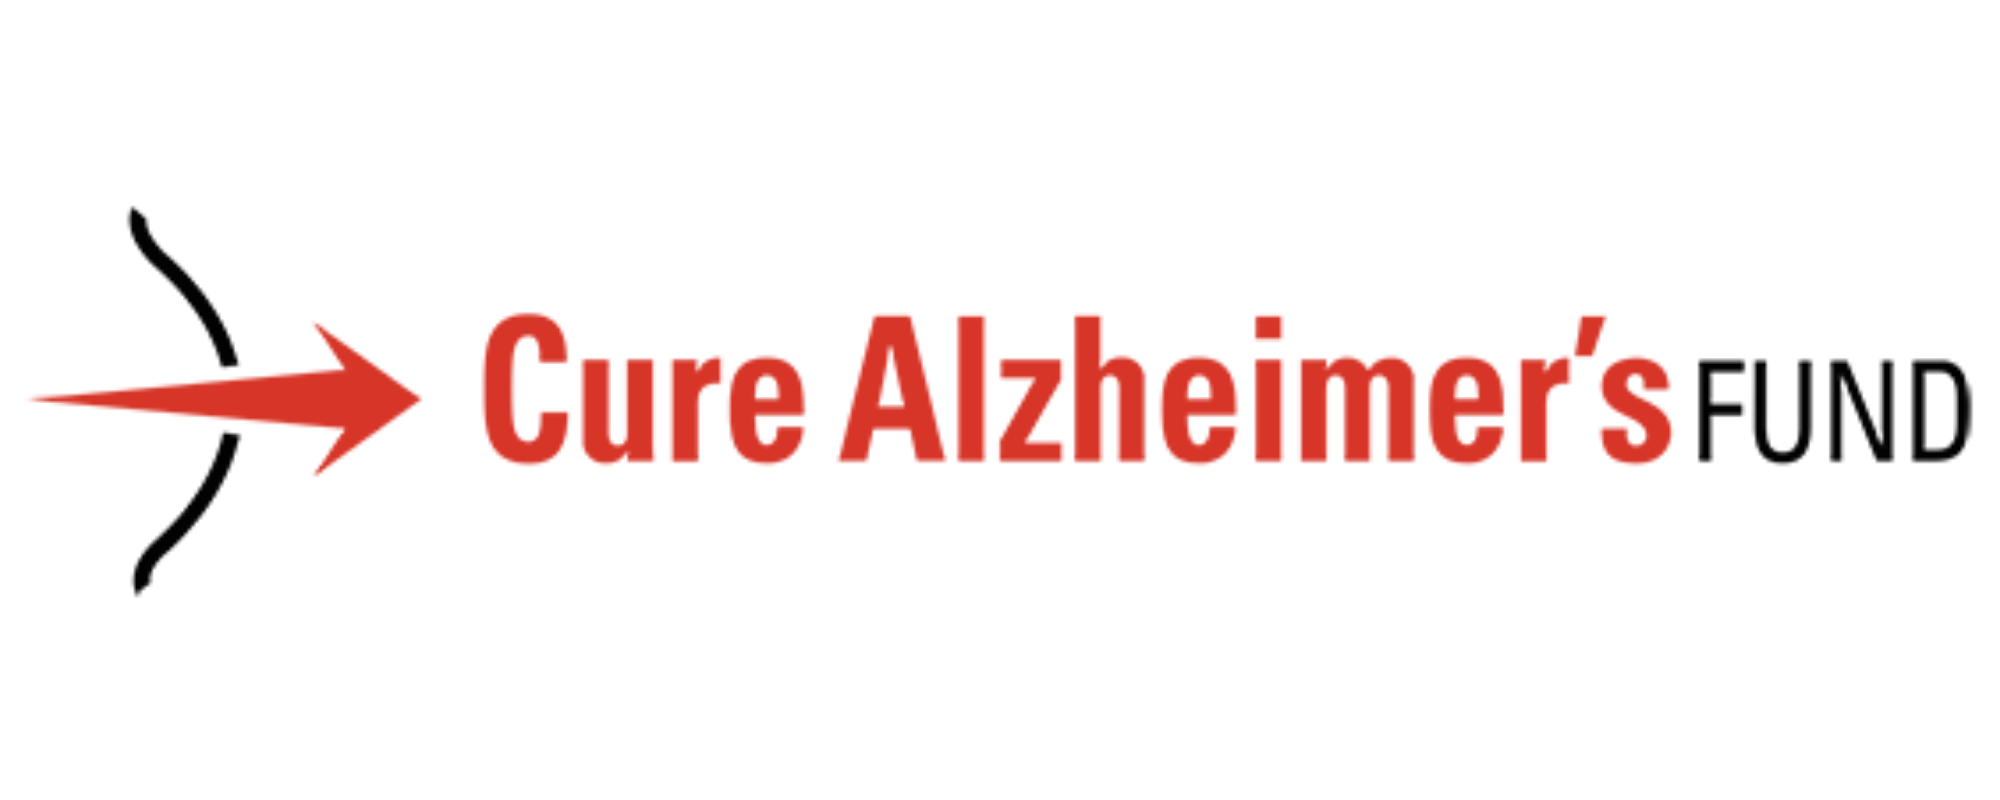 Cure Alzheimers Fund Resized